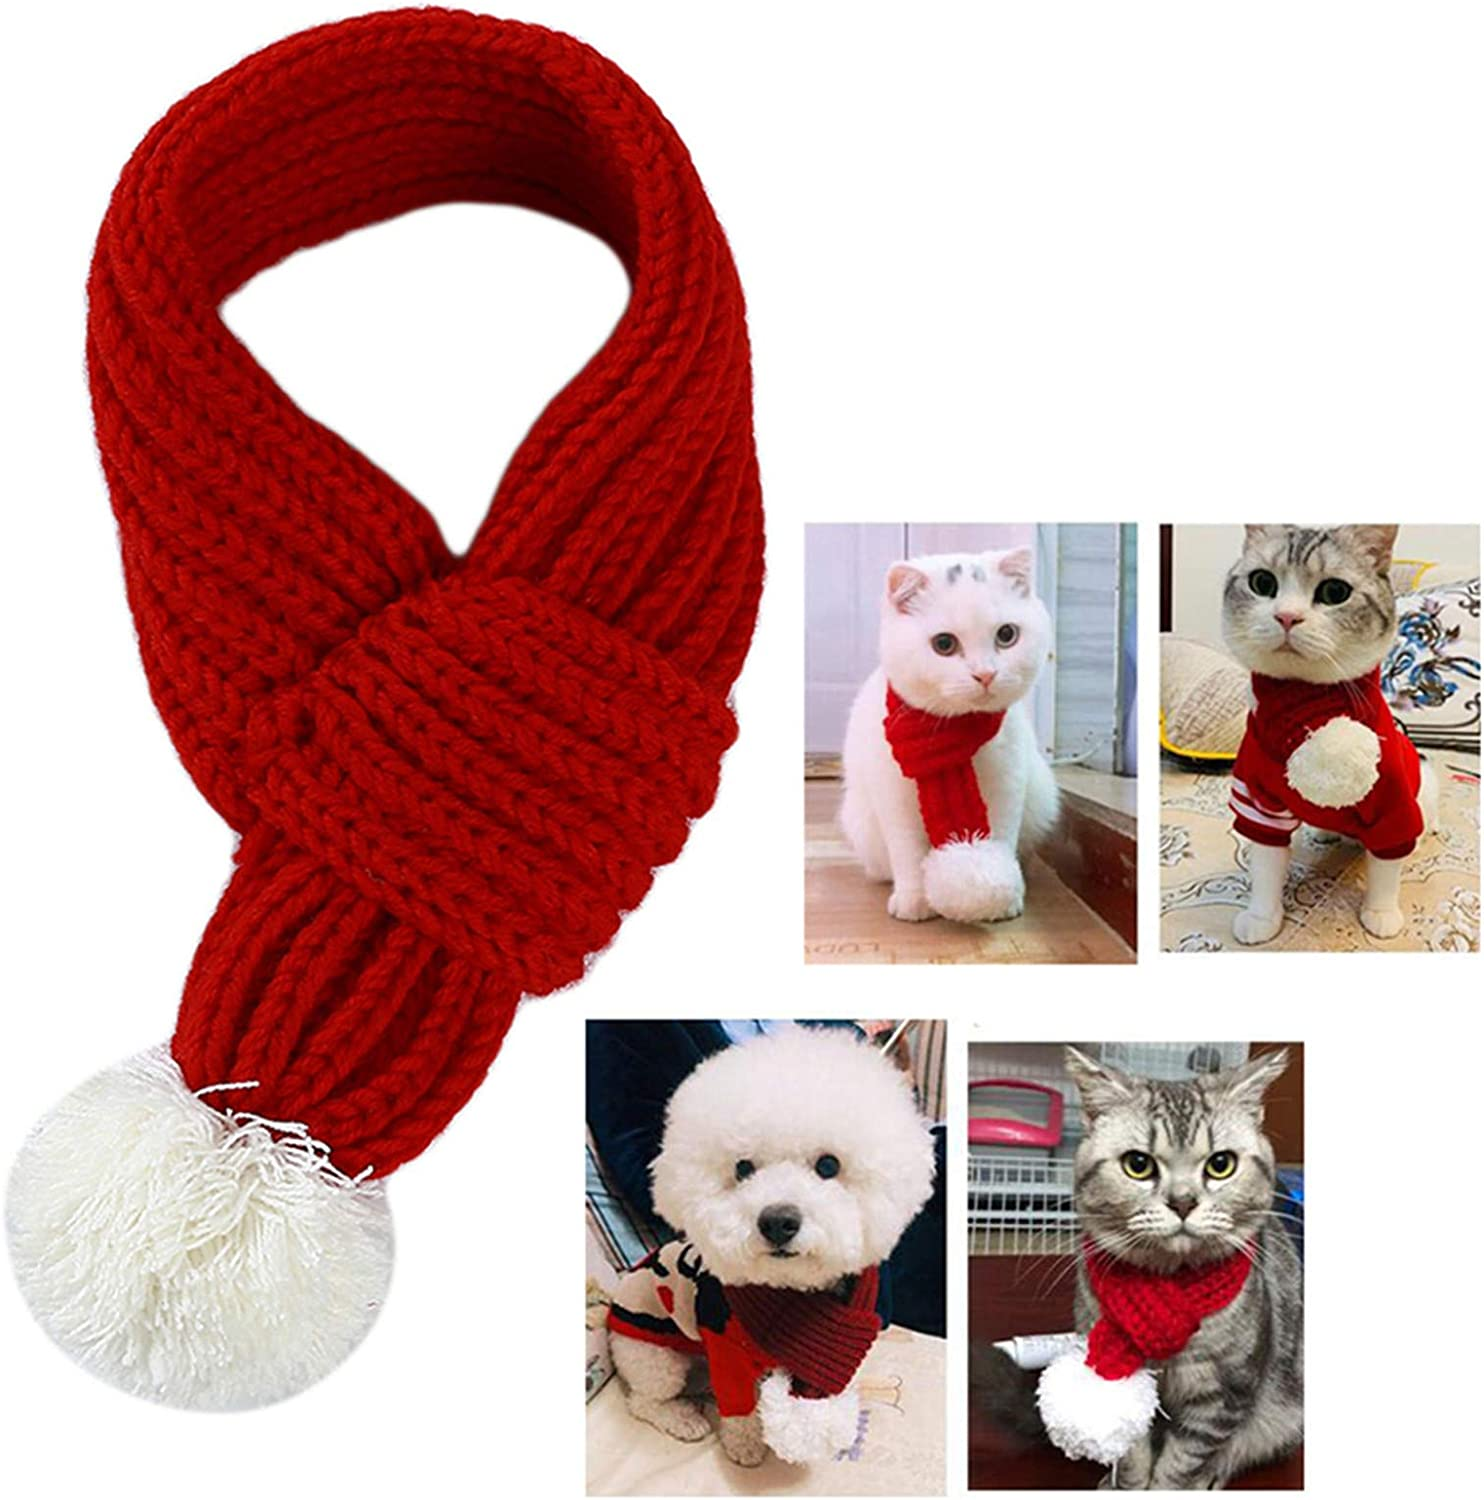 Beeinch Soft Dog Scarf Christmas Pet Knitted Decoration Scarf Christmas Party Pet Decoration Clothing,Large